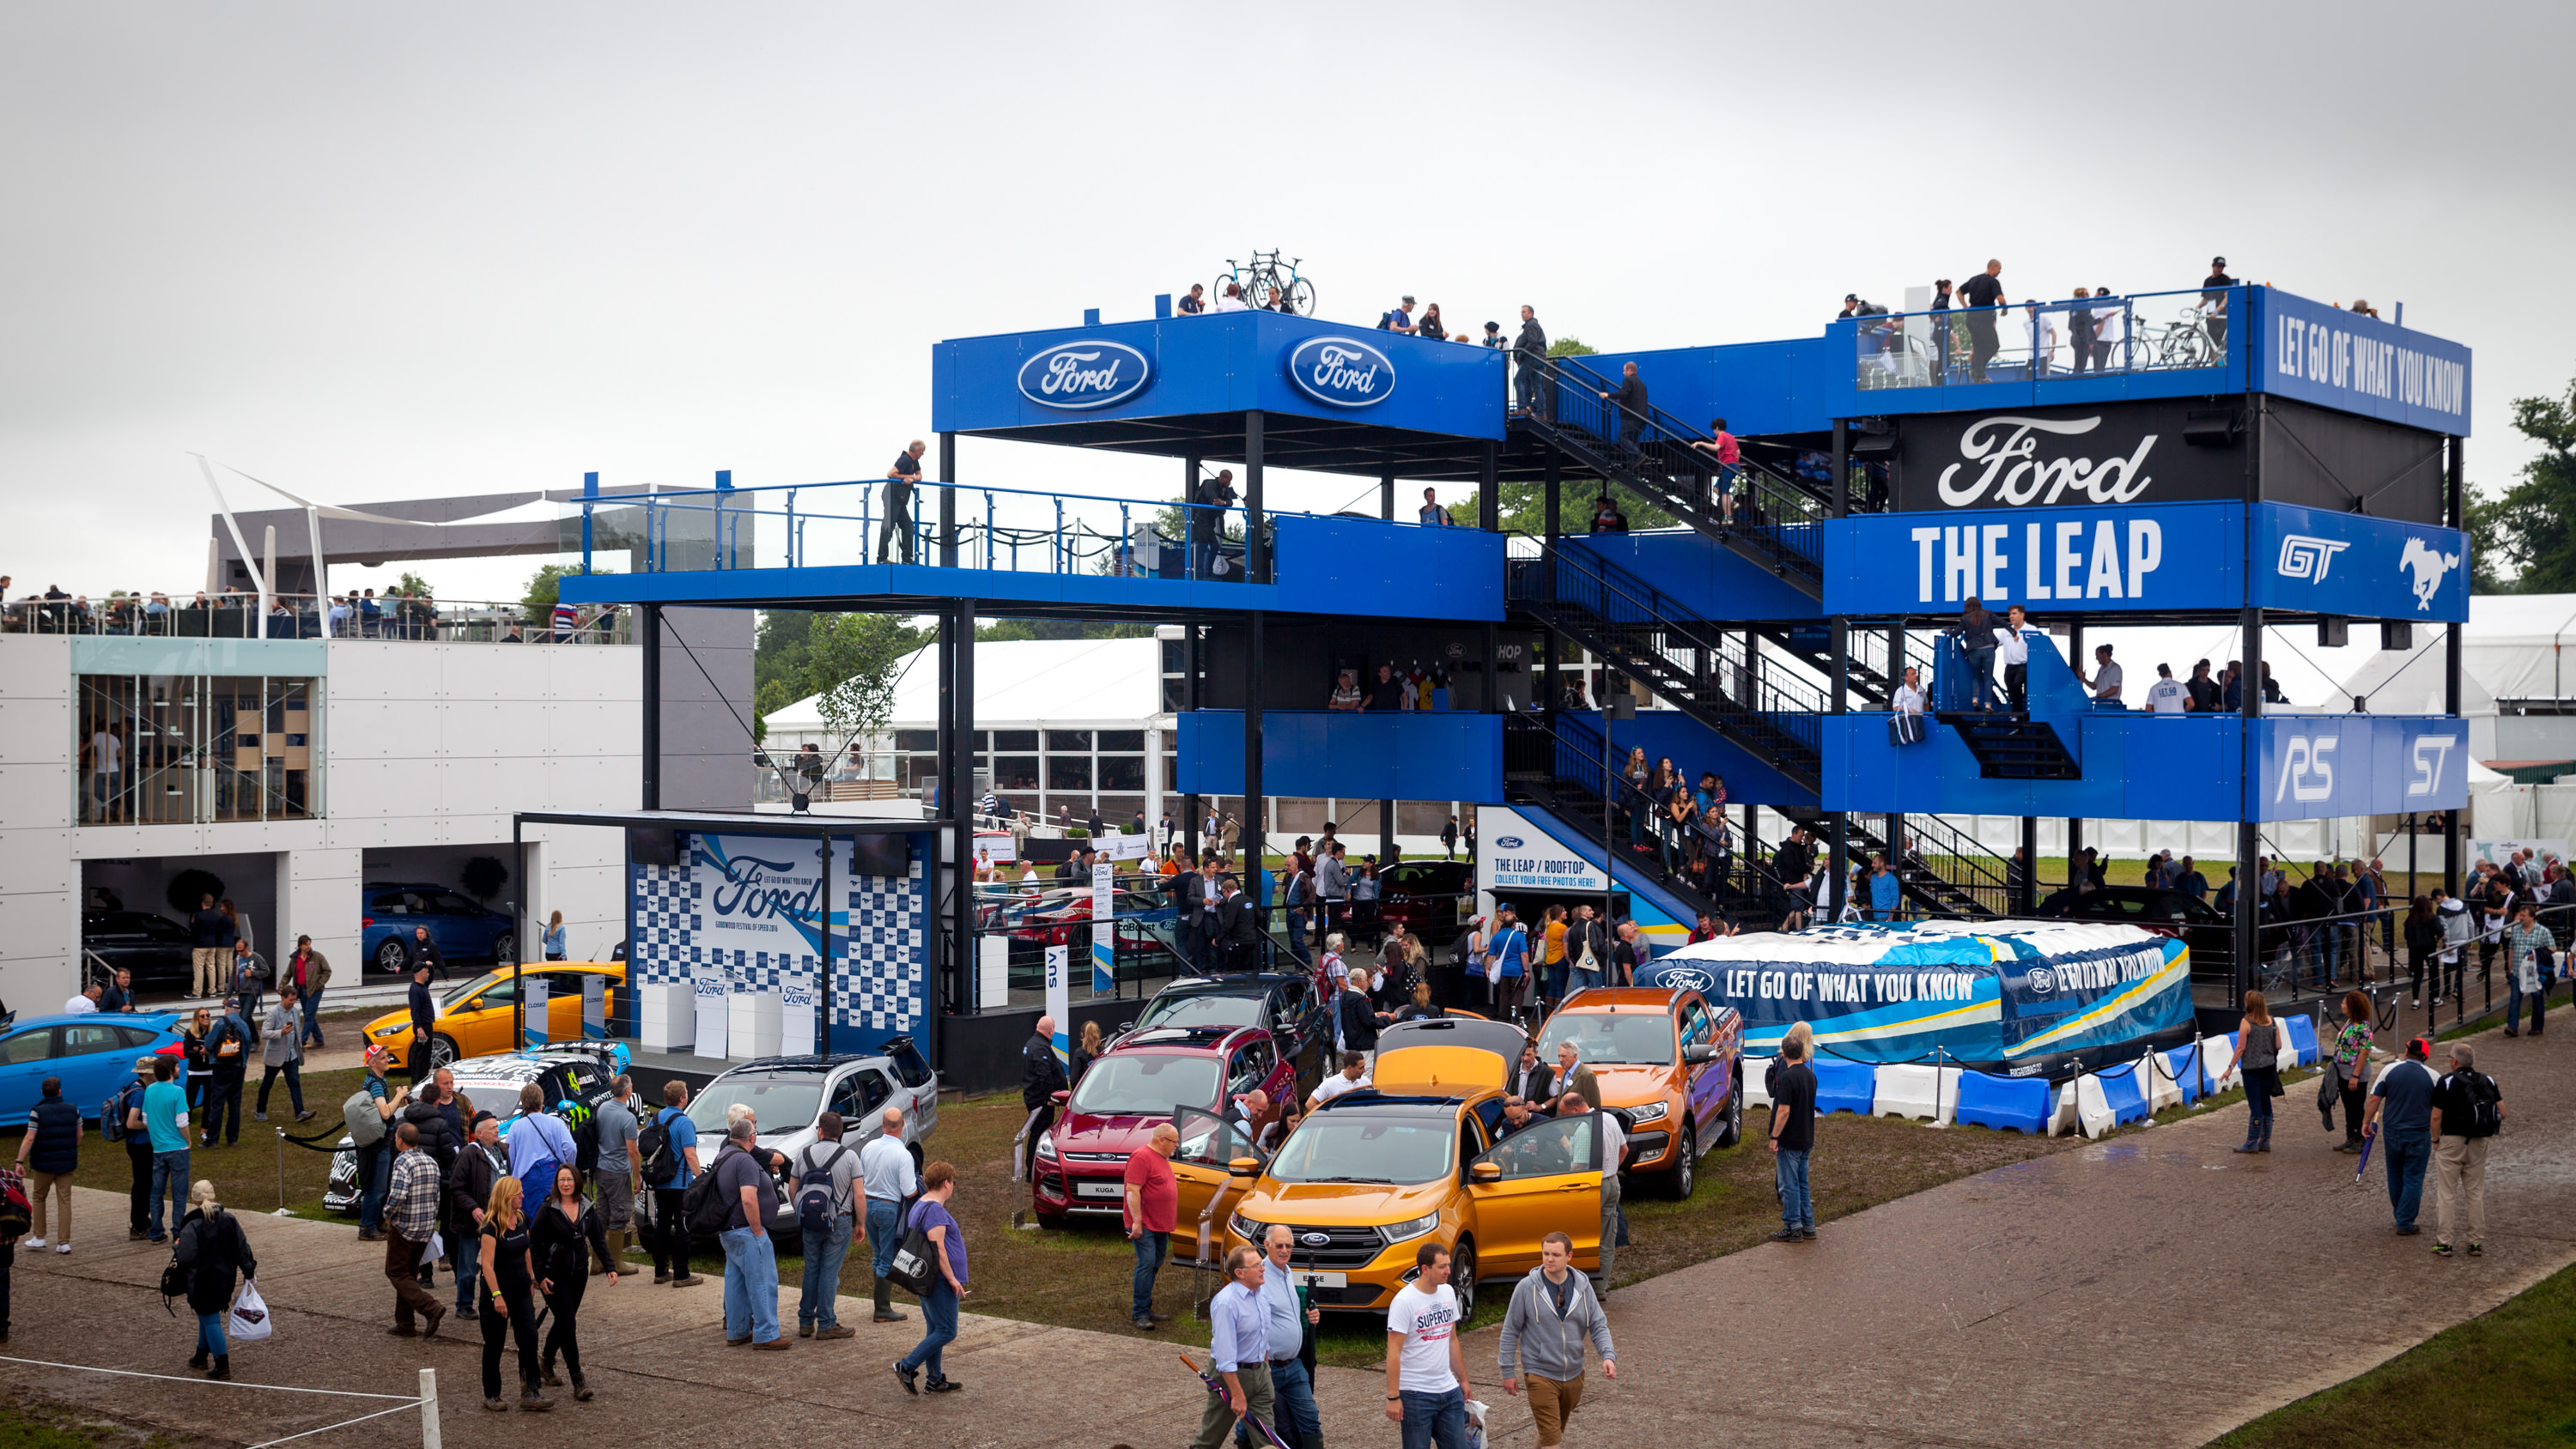 @ampisound's cover photo for 'Ampisound Team Performing for Ford at Goodwood Festival of Speed - Ampisound'